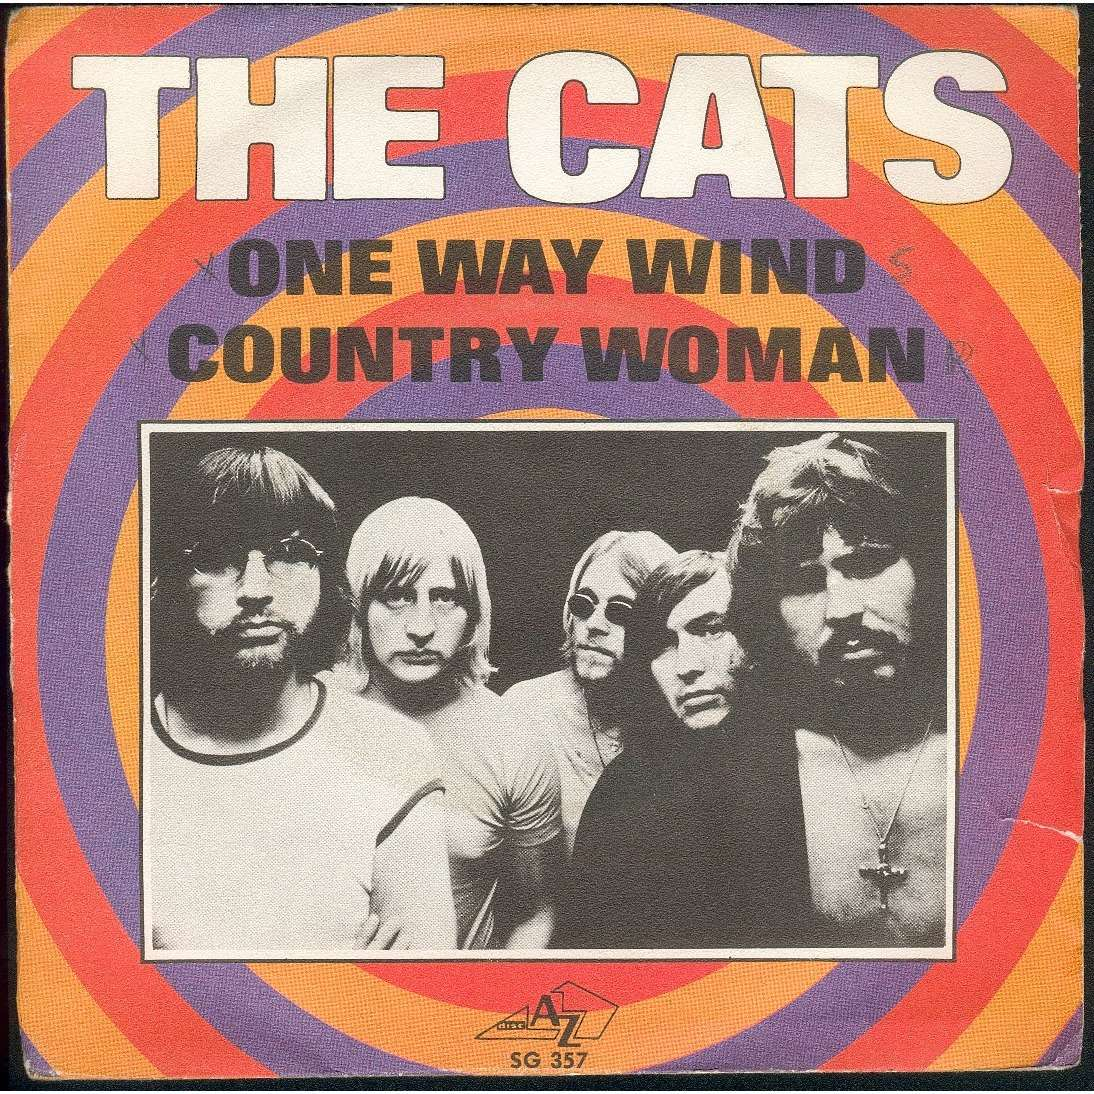 The Cats One Way Wind Video